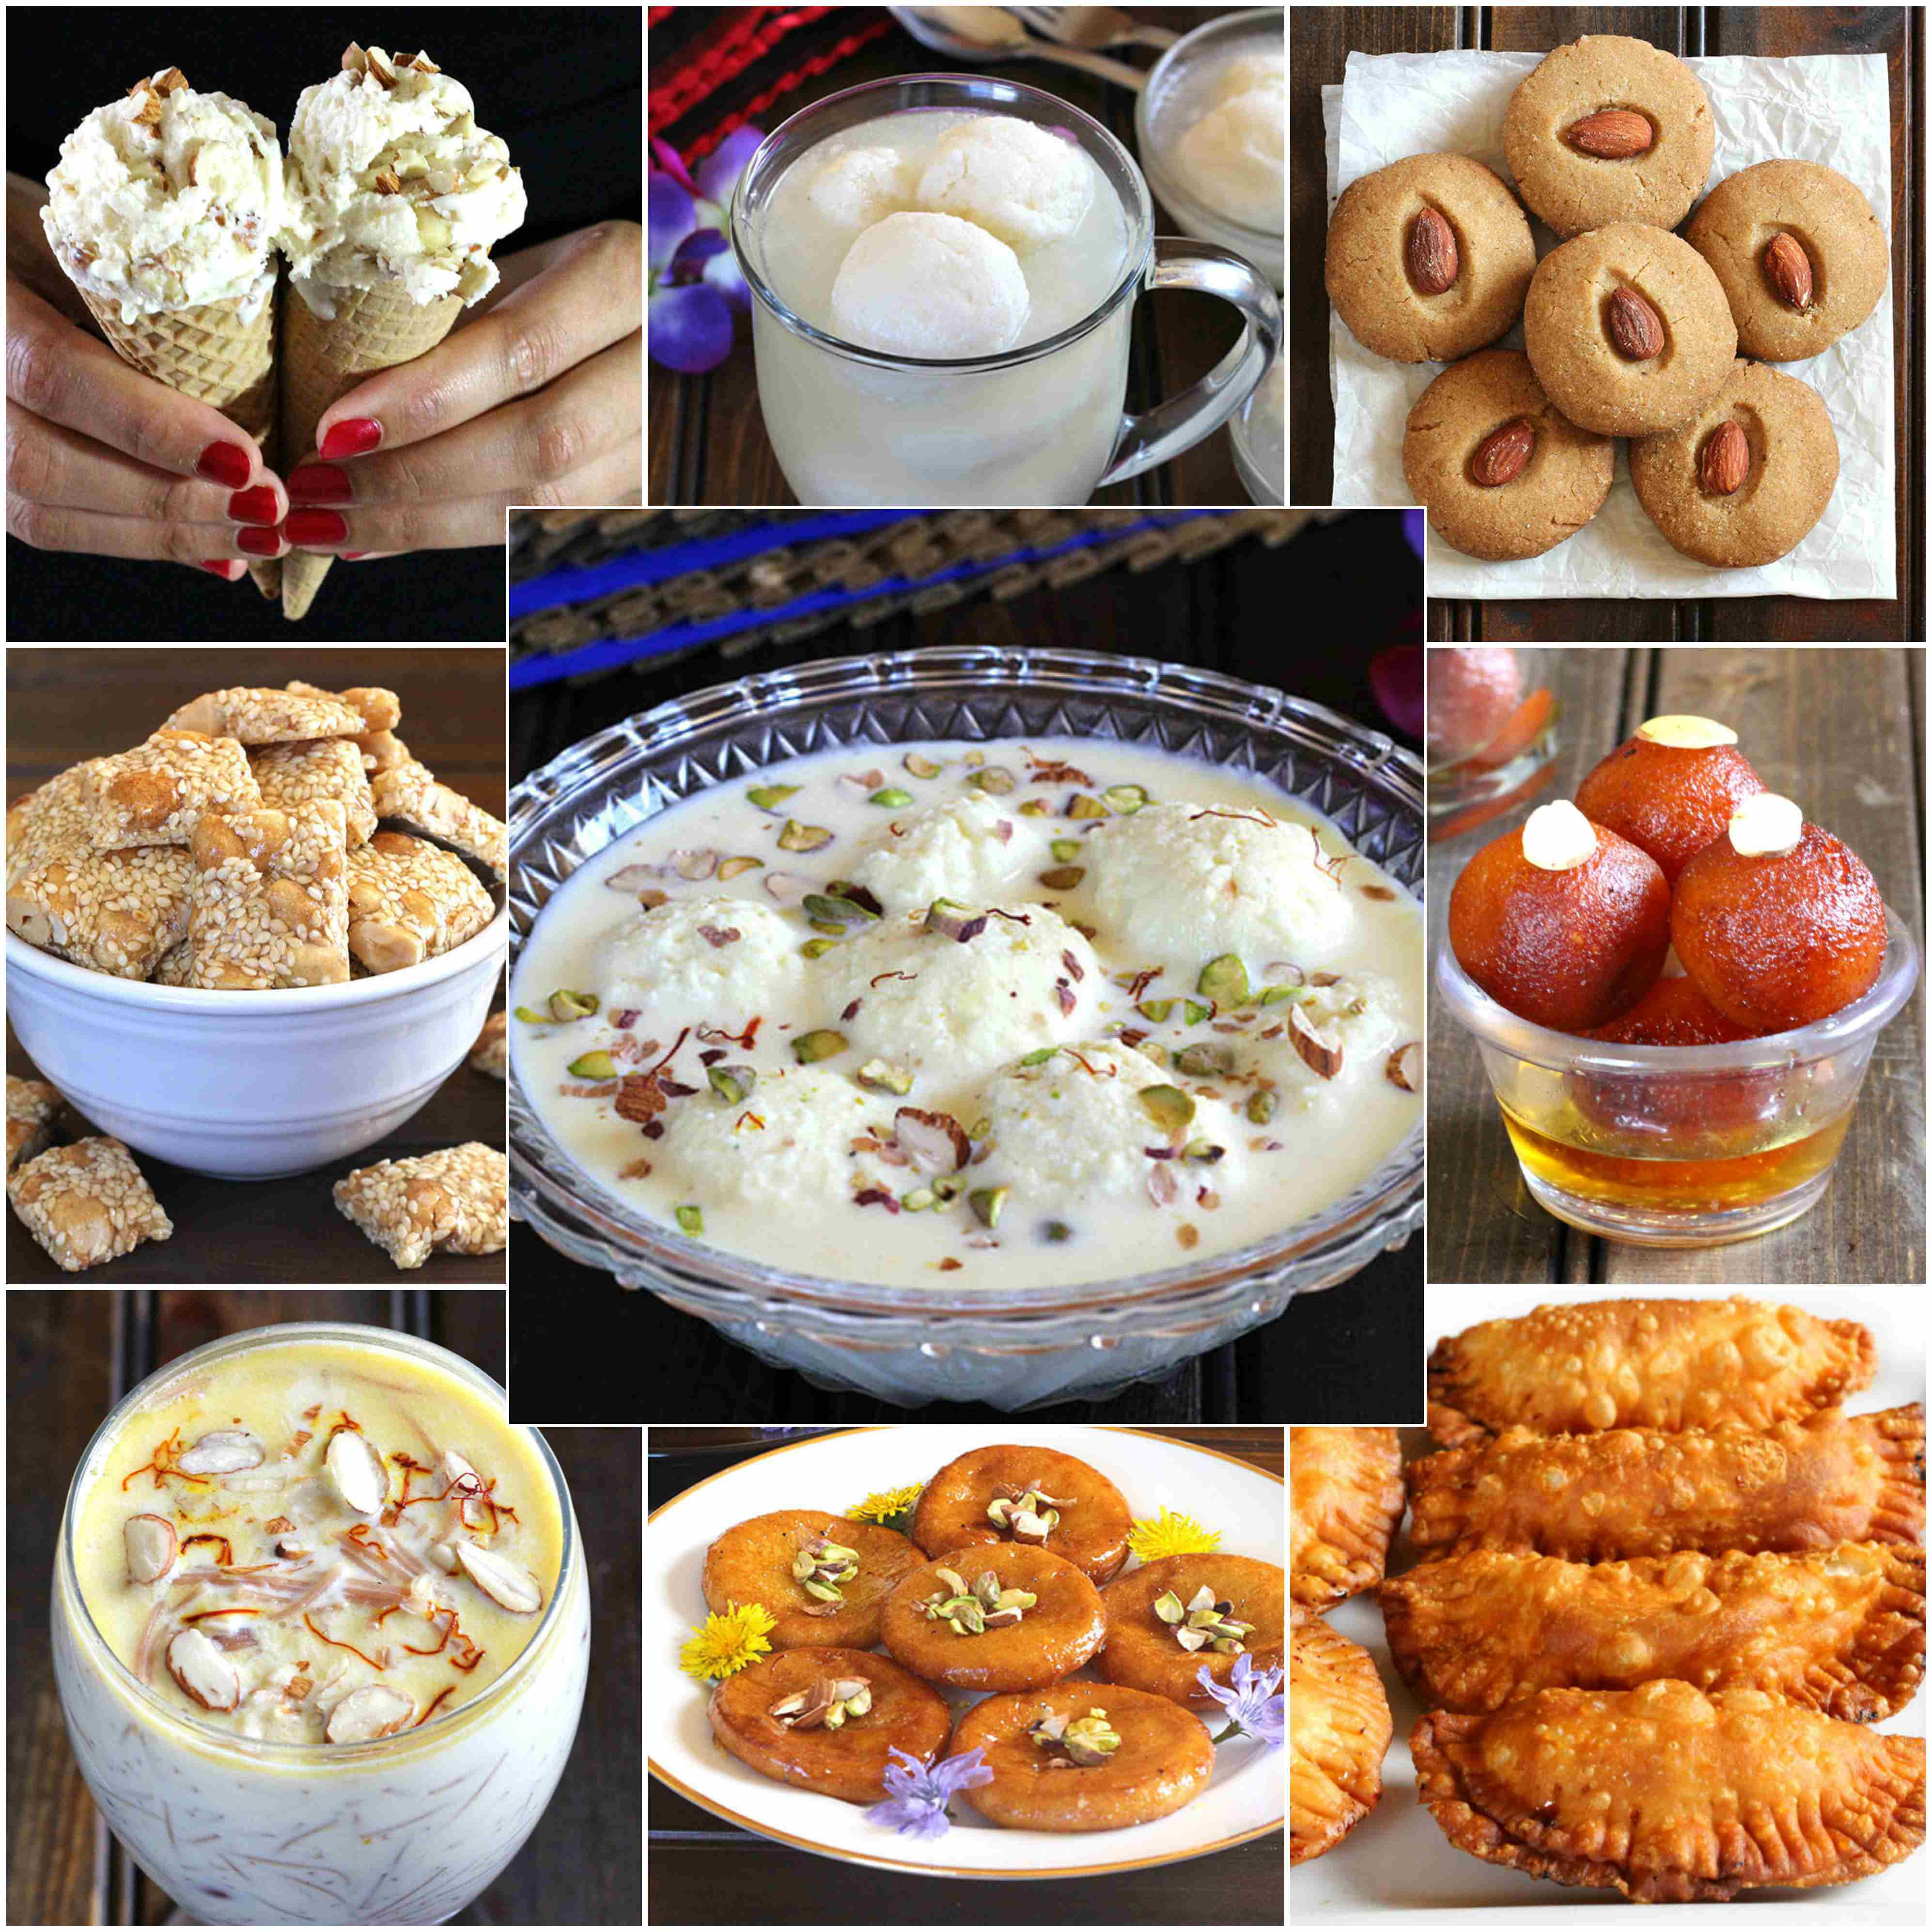 DIWALI SWEETS RECIPES - Cook with Kushi